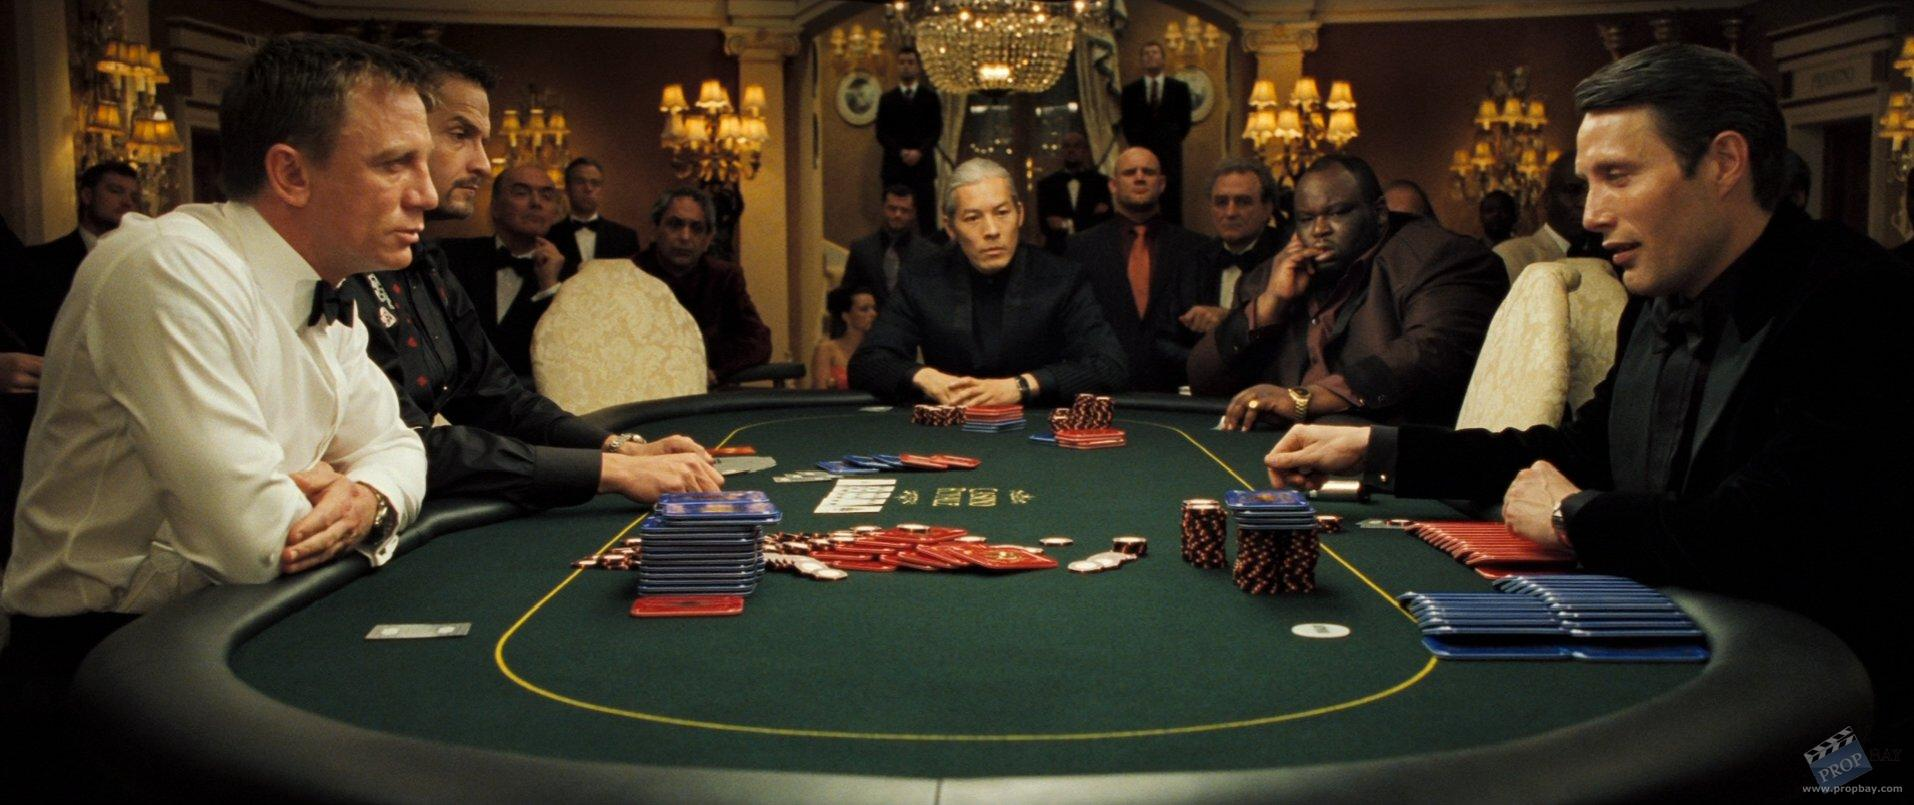 poker casino royale